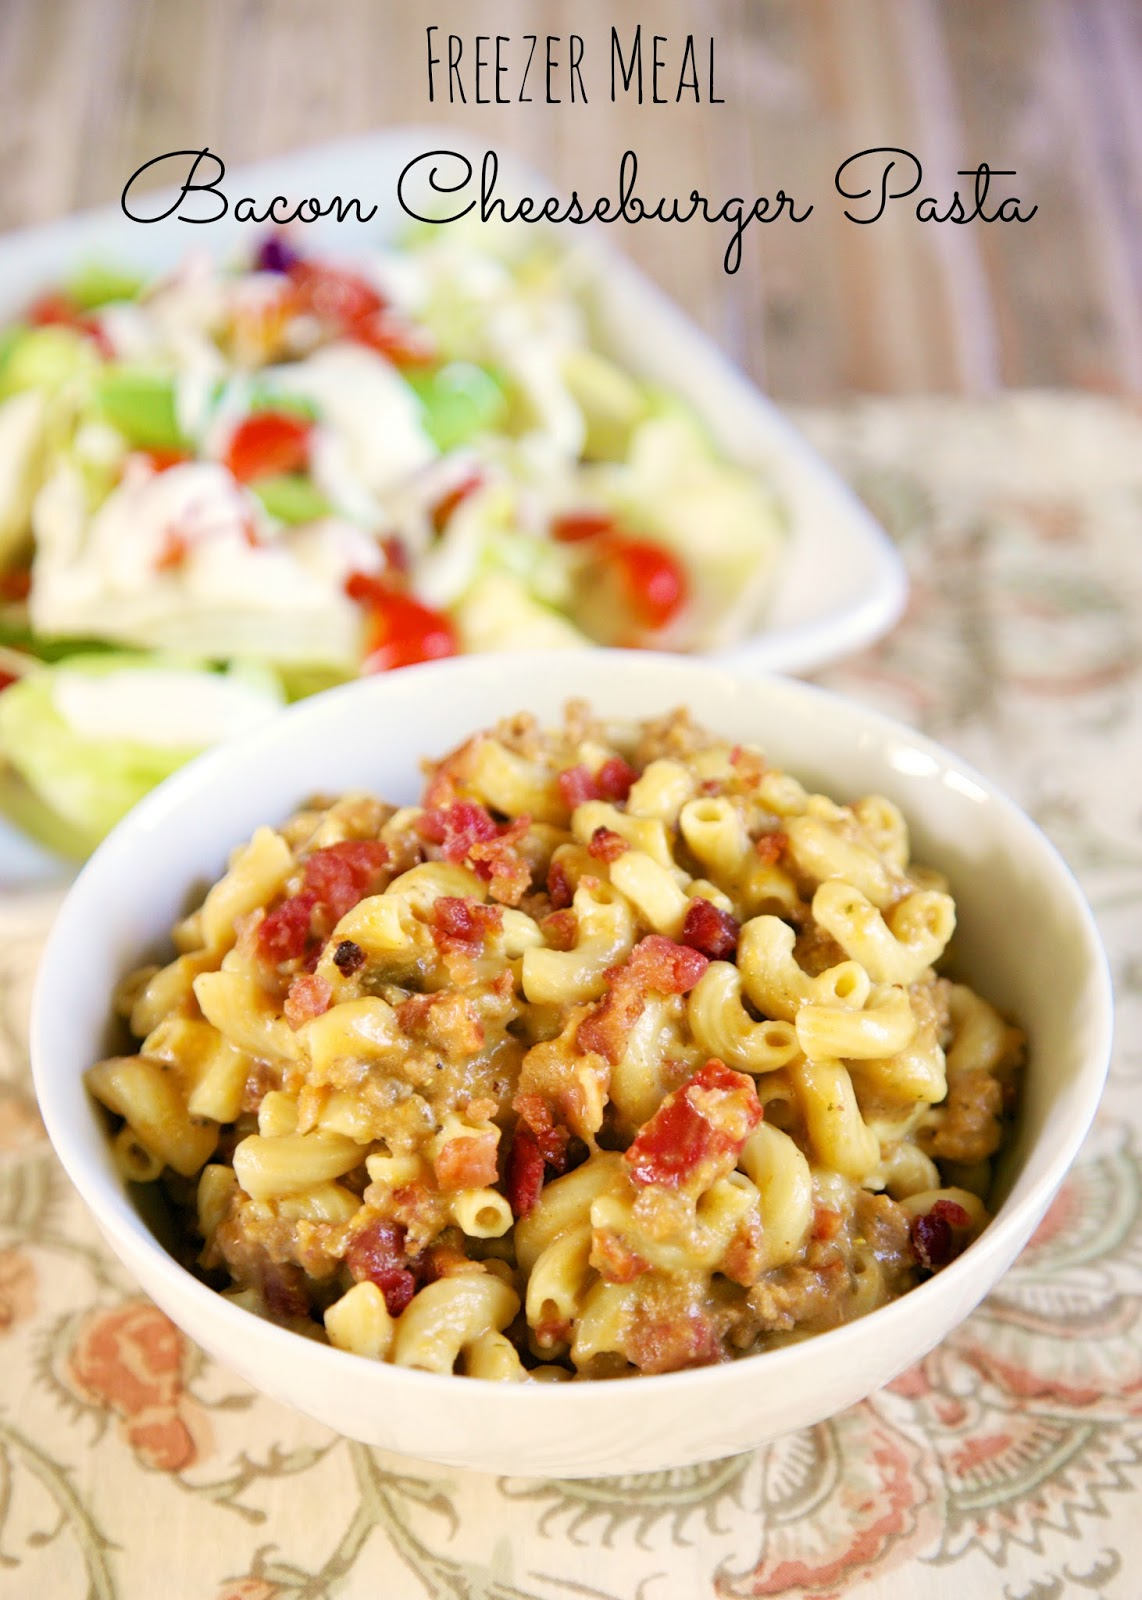 Freezer Meal} Bacon Cheeseburger Pasta | Plain Chicken